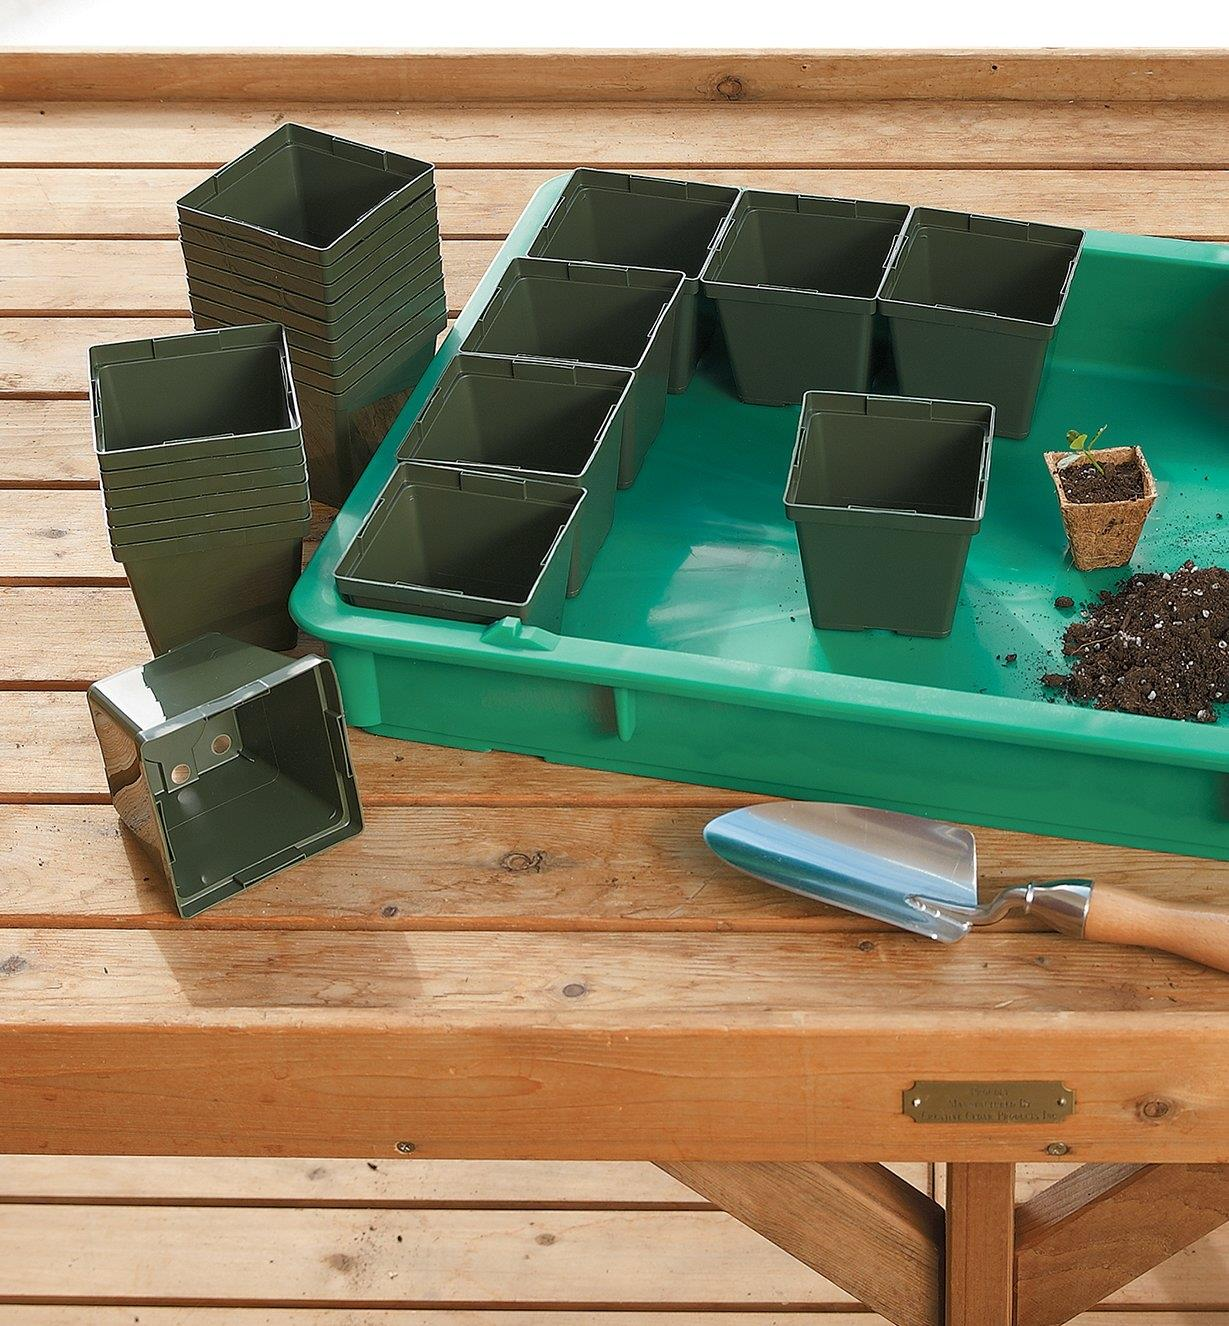 Giant Plant Tray being filled with square plastic pots on a potting table